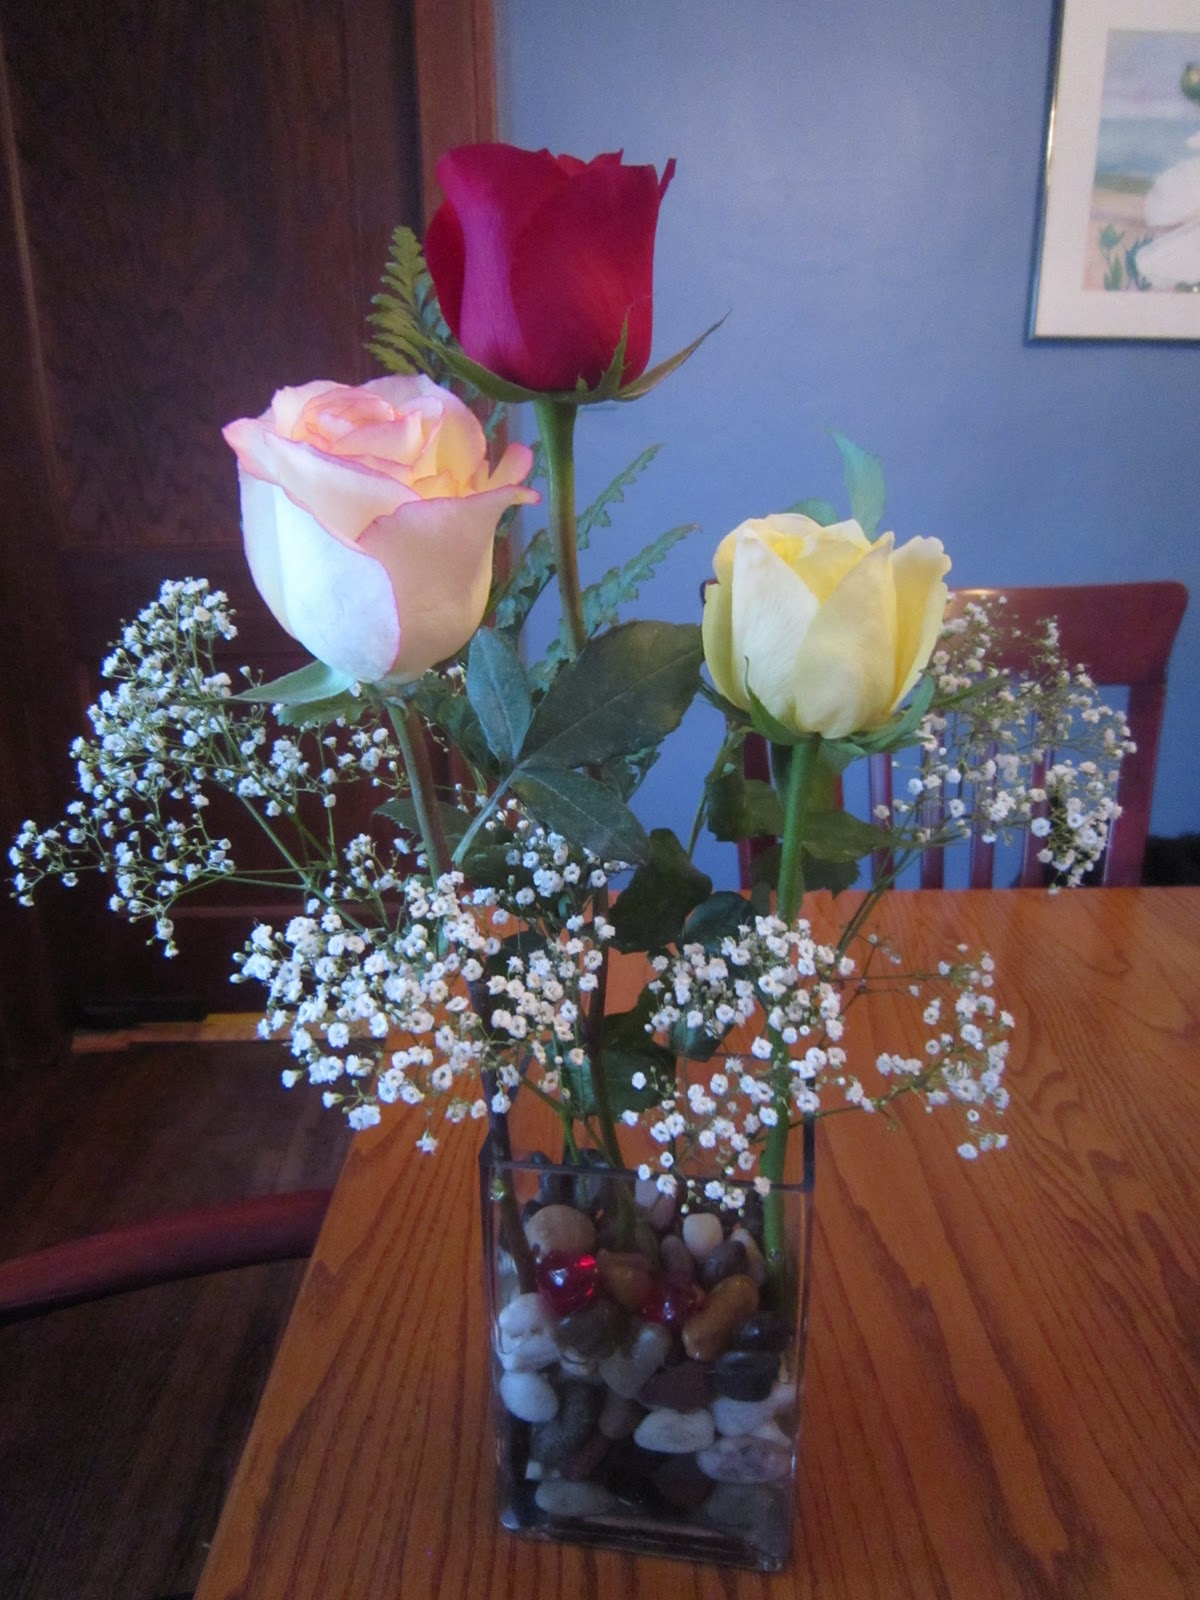 Chuck Does Art Artfully Arranging Flowers Three Roses For Valentines